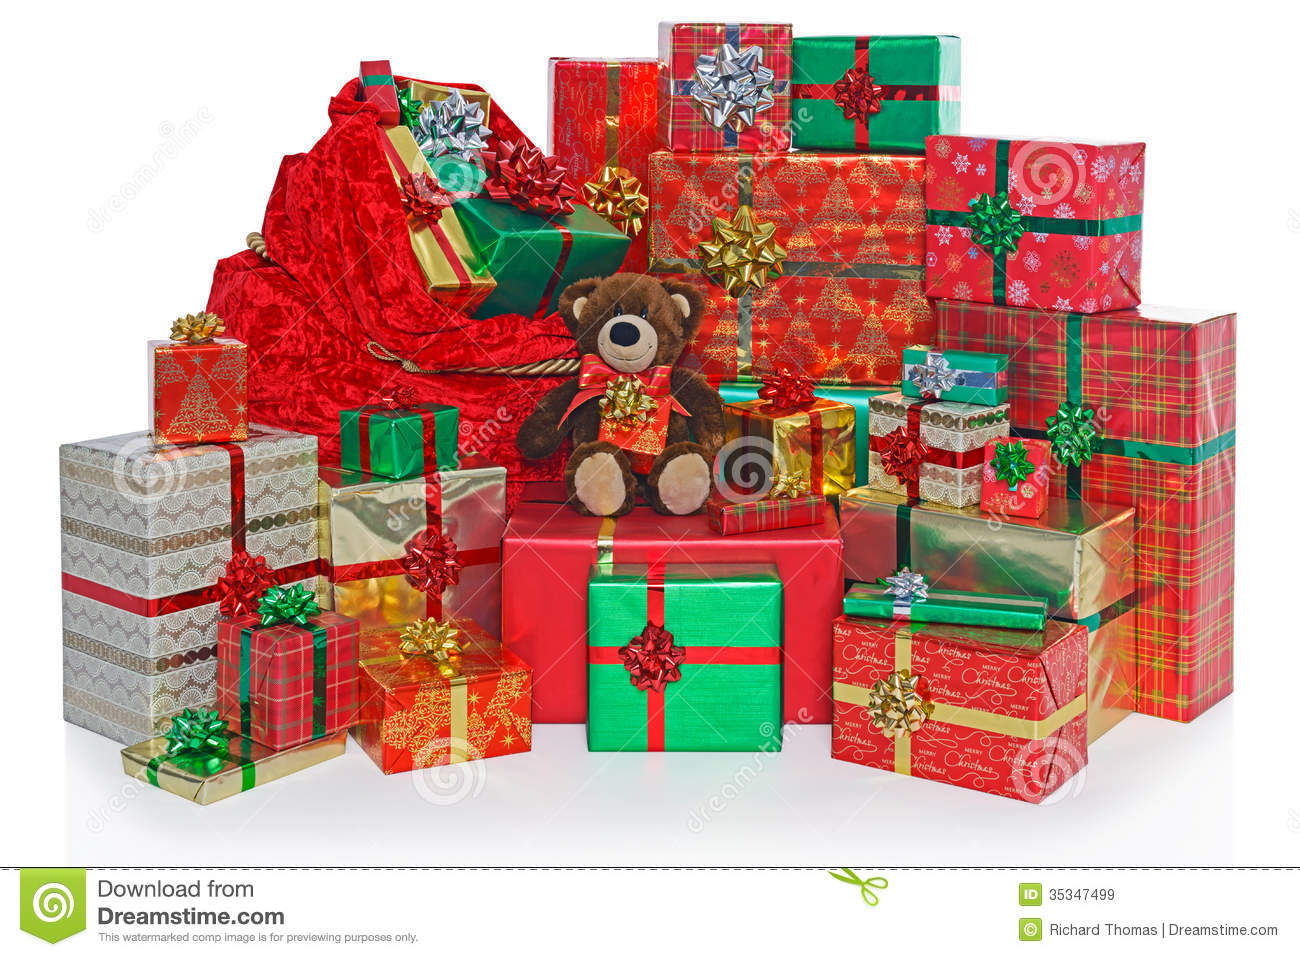 Christmas Present Sack And Gifts. Royalty Free Stock Images - Image ...: www.dreamstime.com/royalty-free-stock-images-christmas-present-sack...